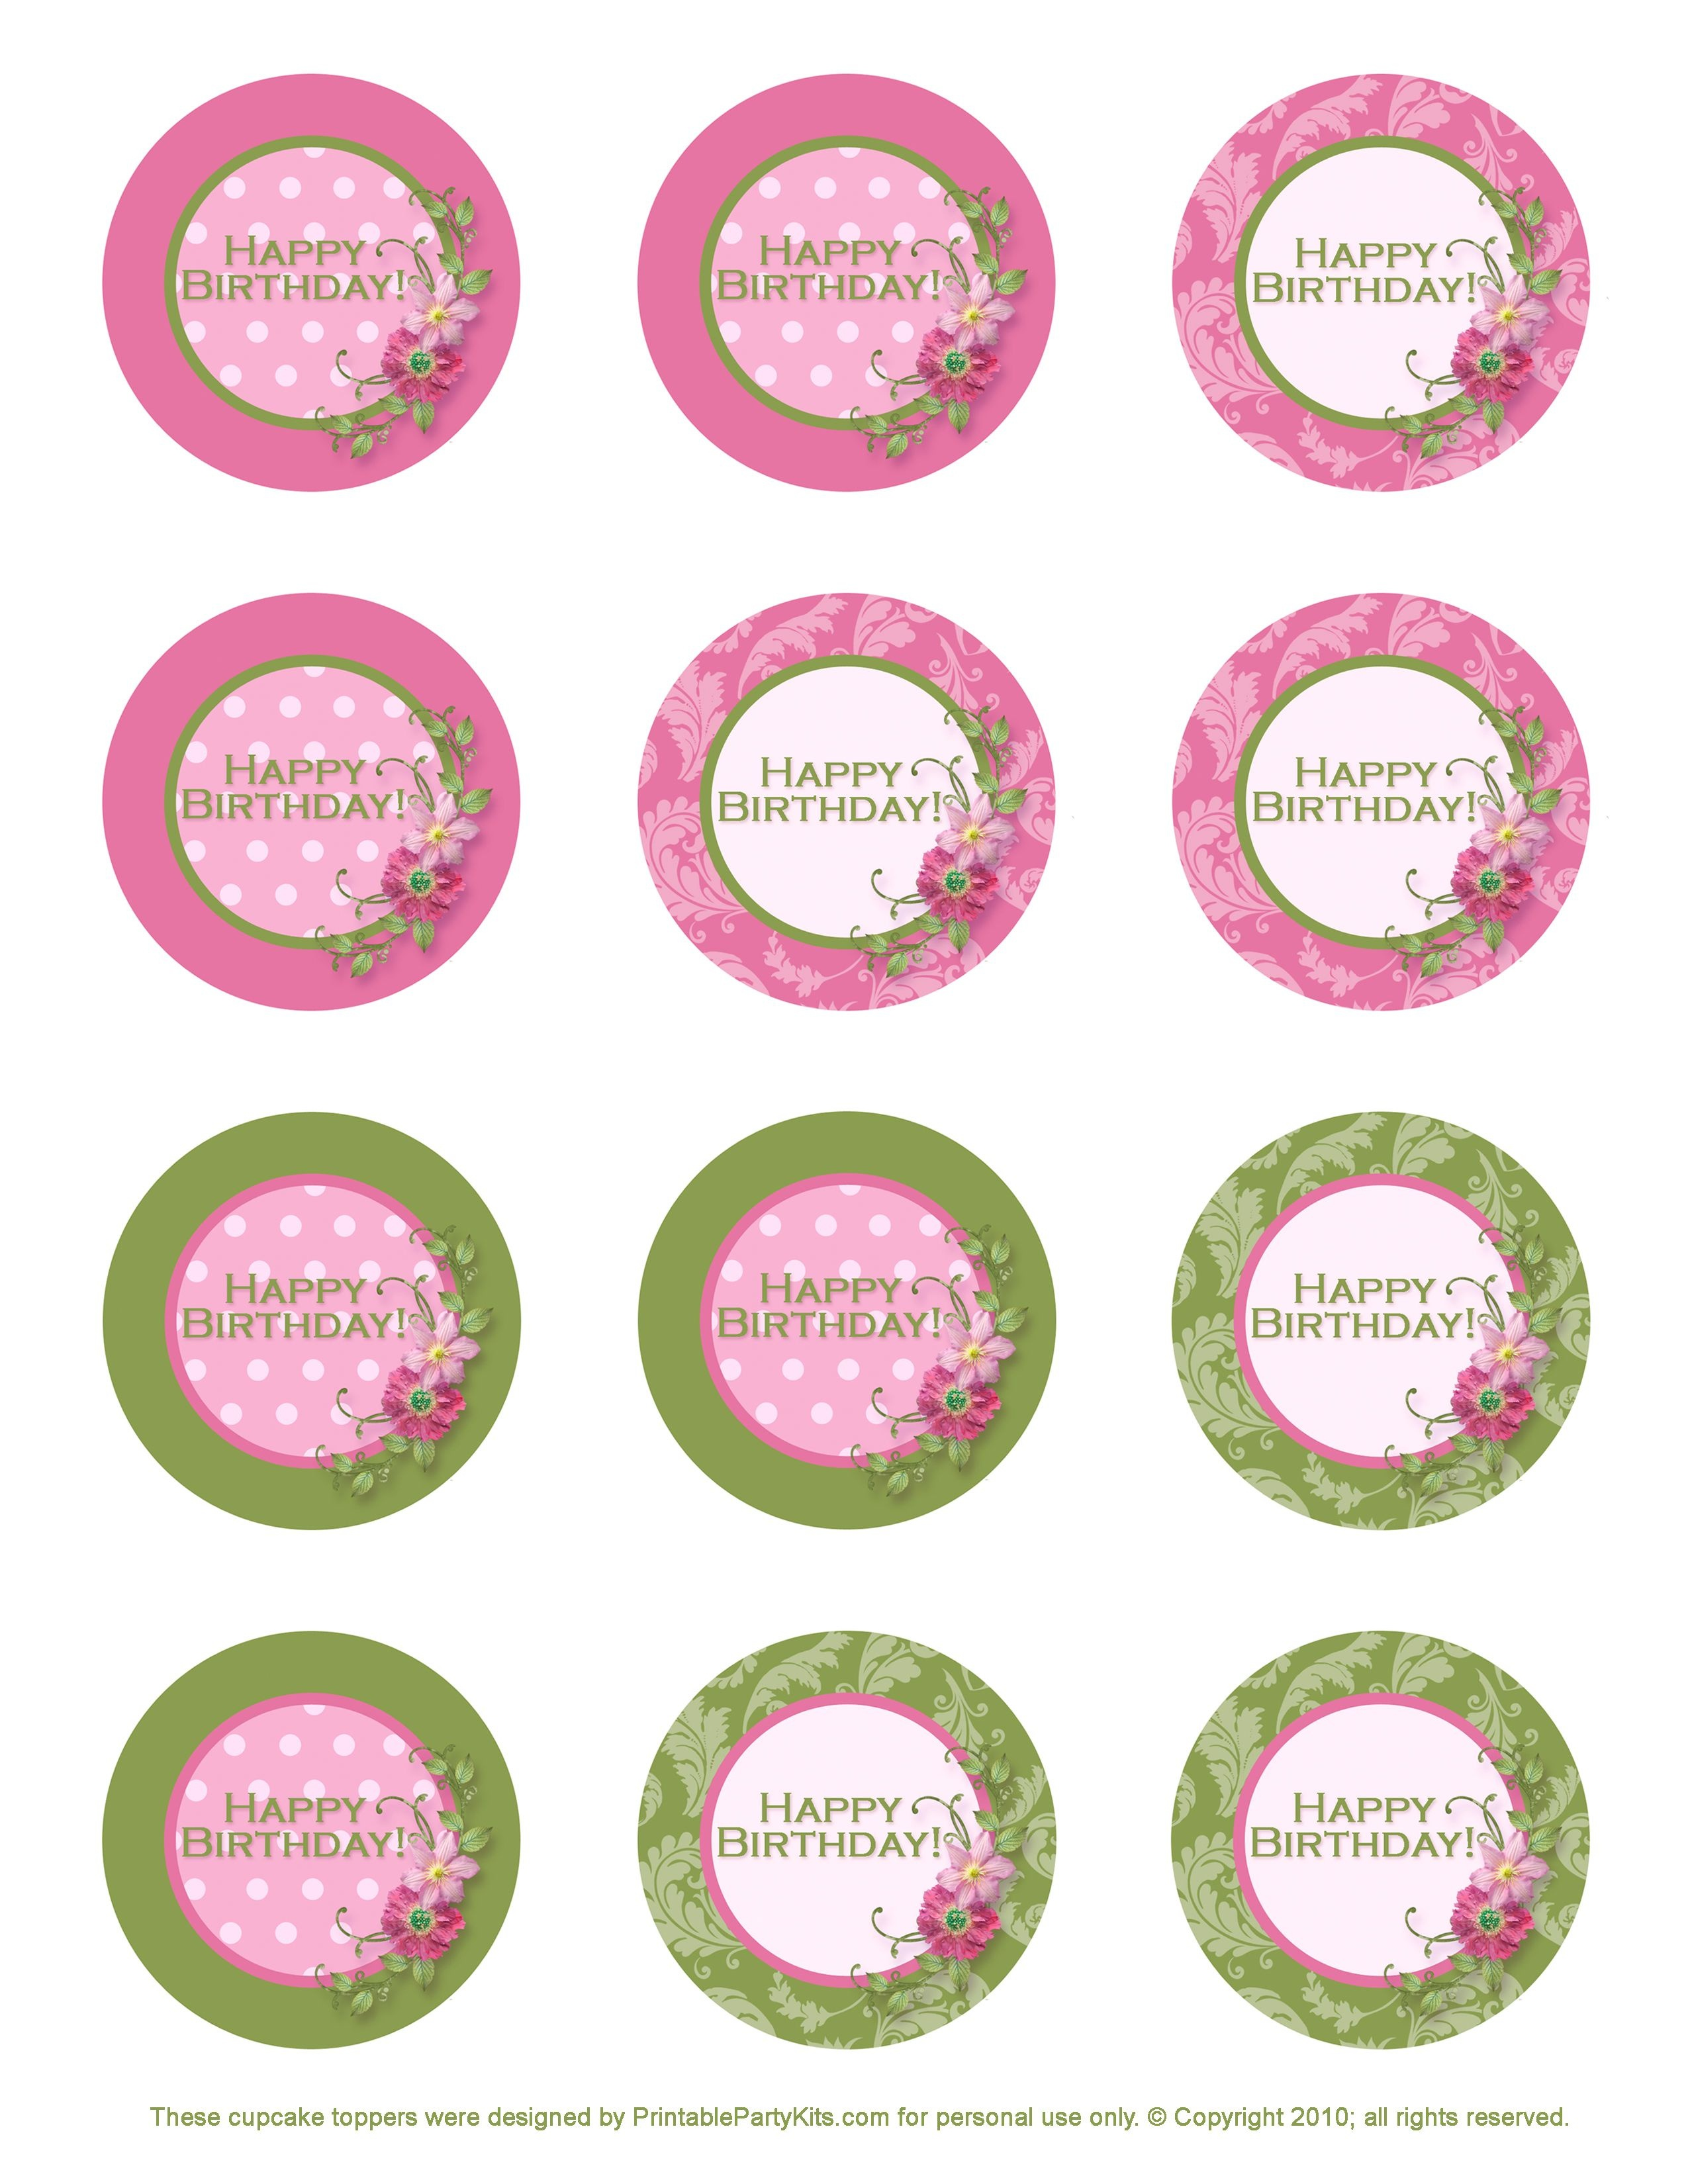 Free Printable Birthday Cupcake Toppers | Crafts | Birthday Cupcakes - Free Printable Barbie Cupcake Toppers